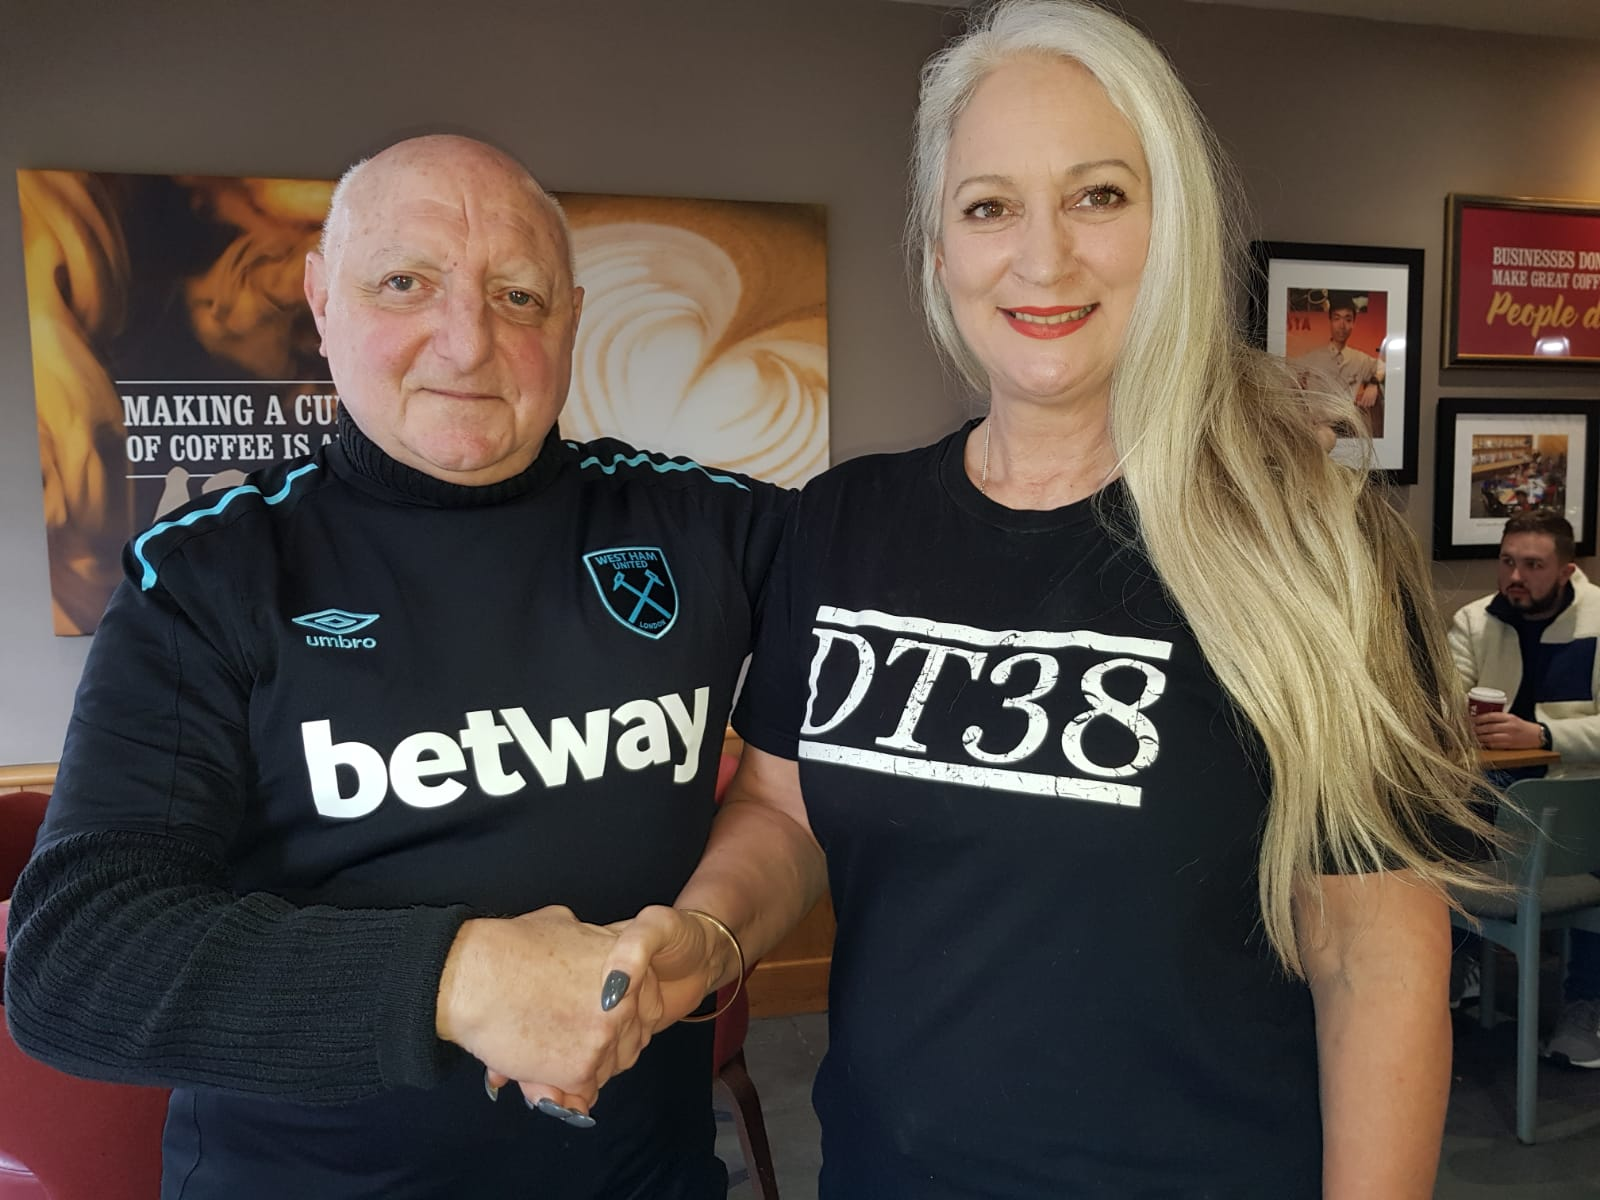 WHUISA Membership Officer Lew Ozarow with Tracey Tombides of DT38